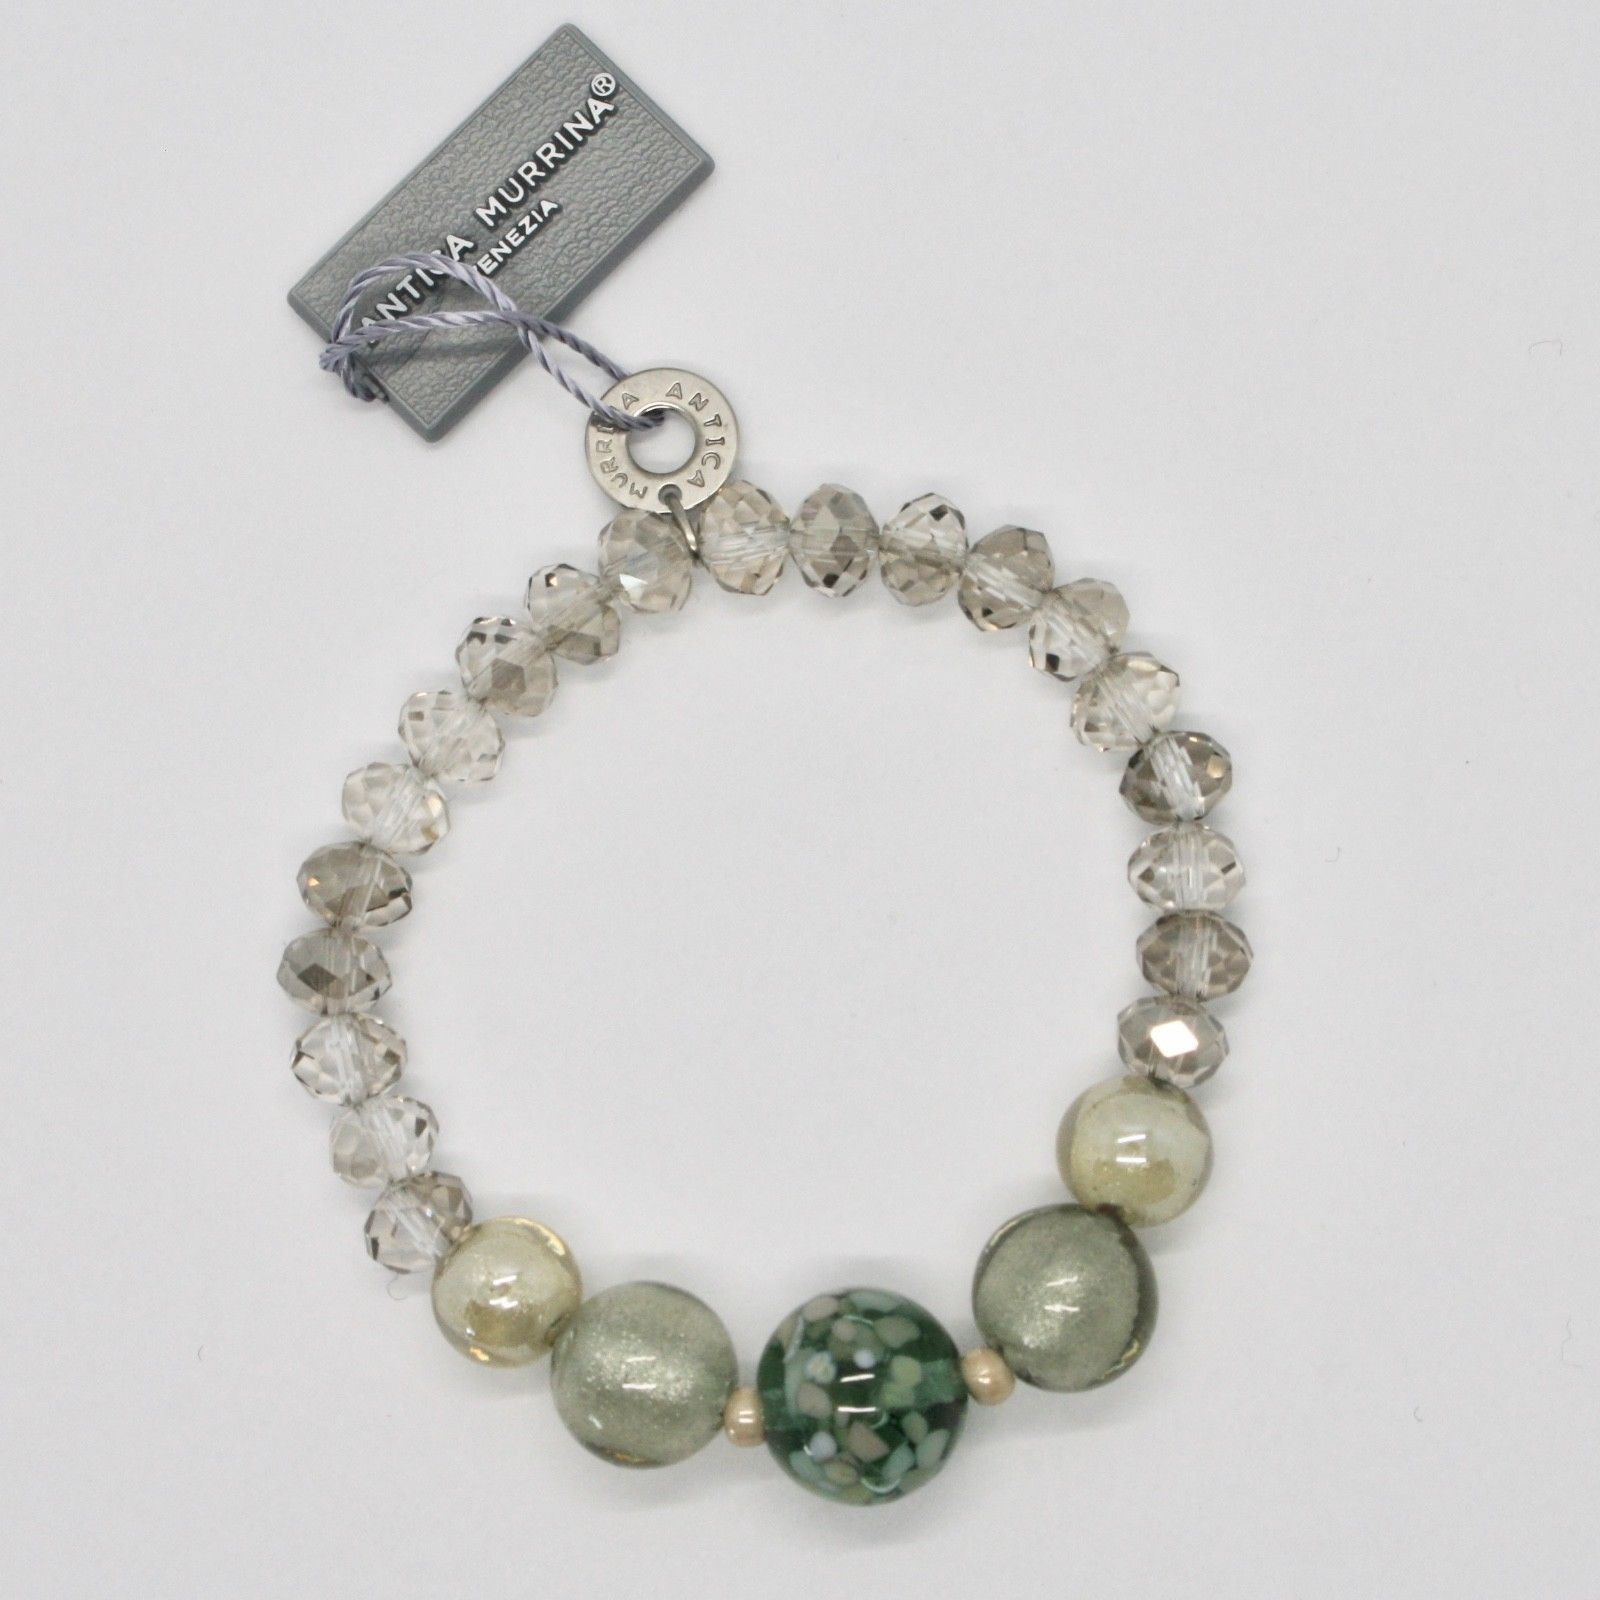 BRACELET ANTICA MURRINA VENEZIA WITH MURANO GLASS GRAY BEIGE GREEN BR797A34